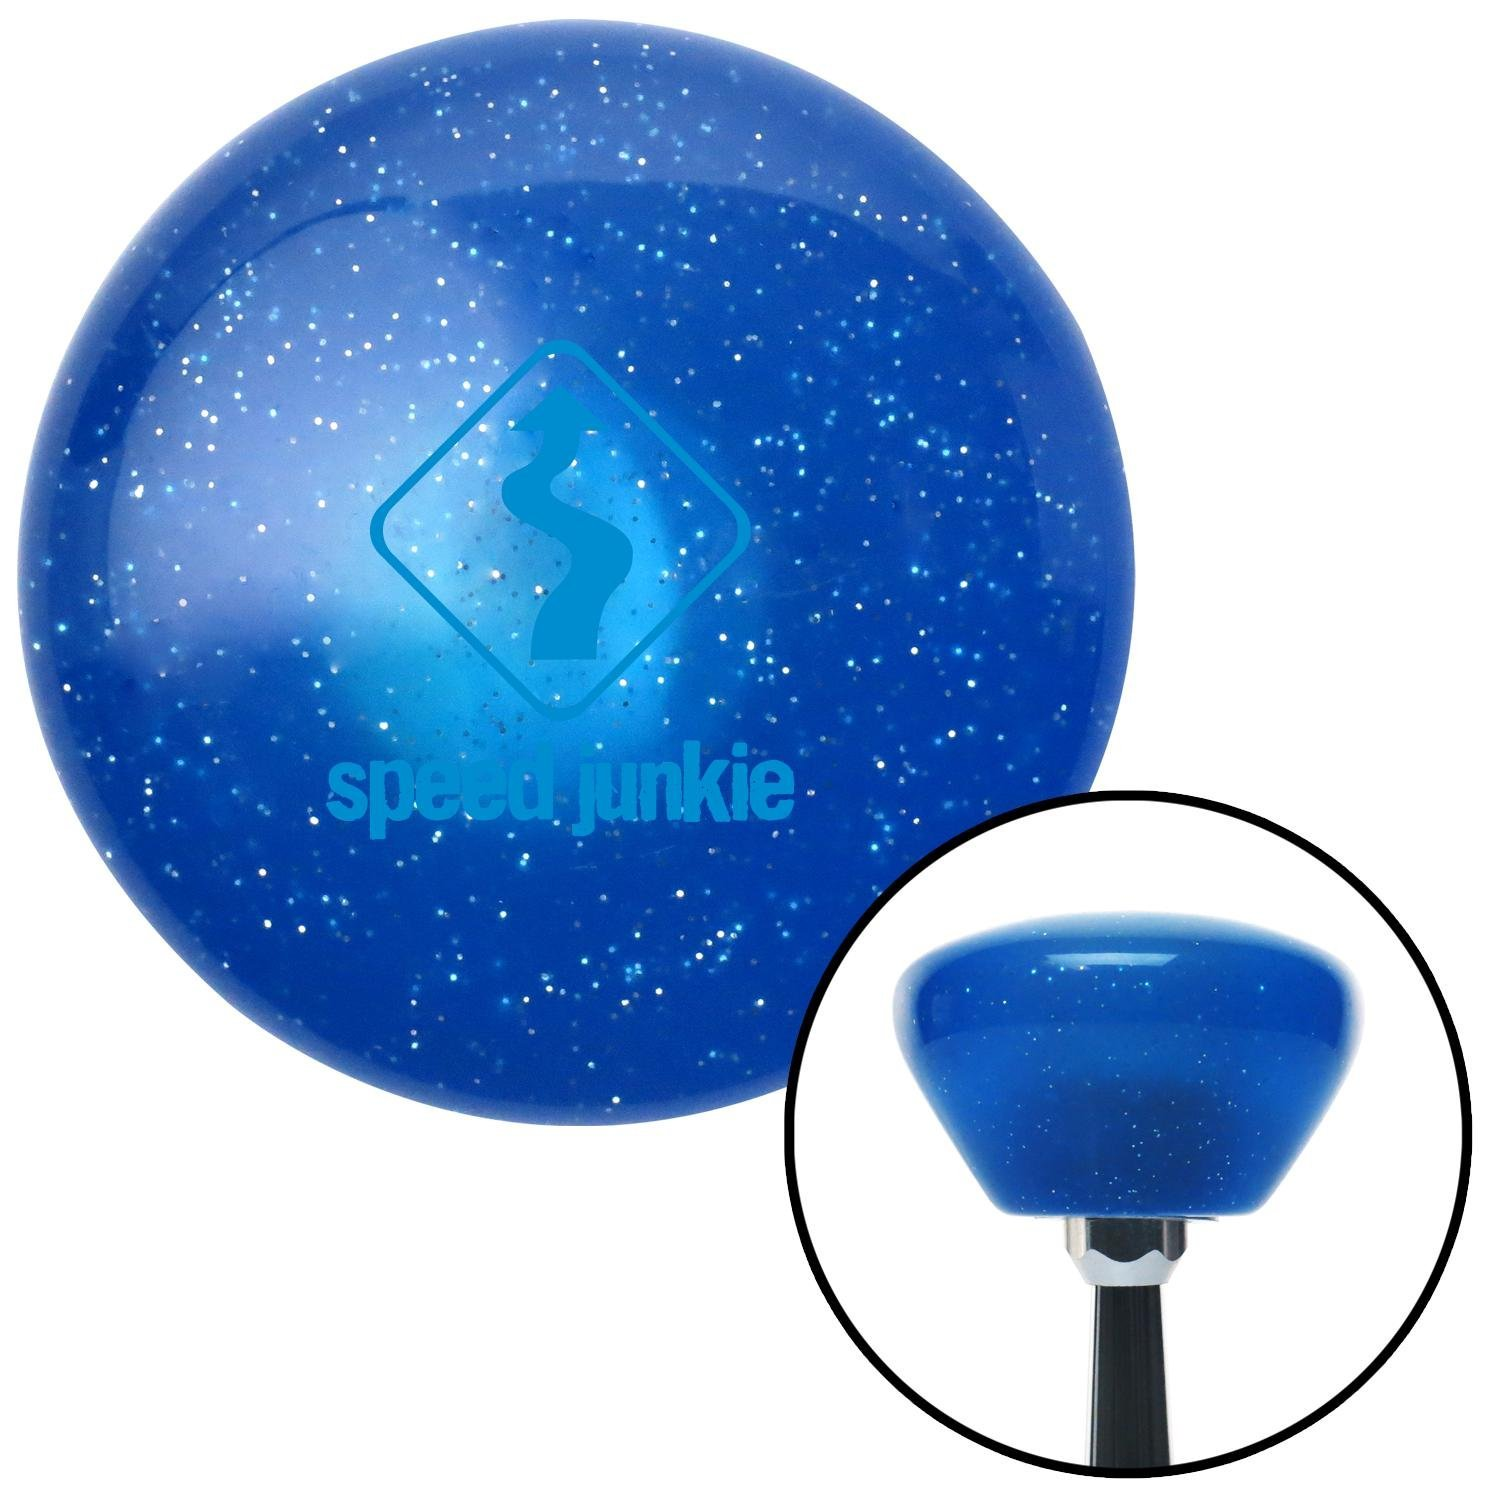 Blue Speed Junkie American Shifter 188968 Blue Retro Metal Flake Shift Knob with M16 x 1.5 Insert